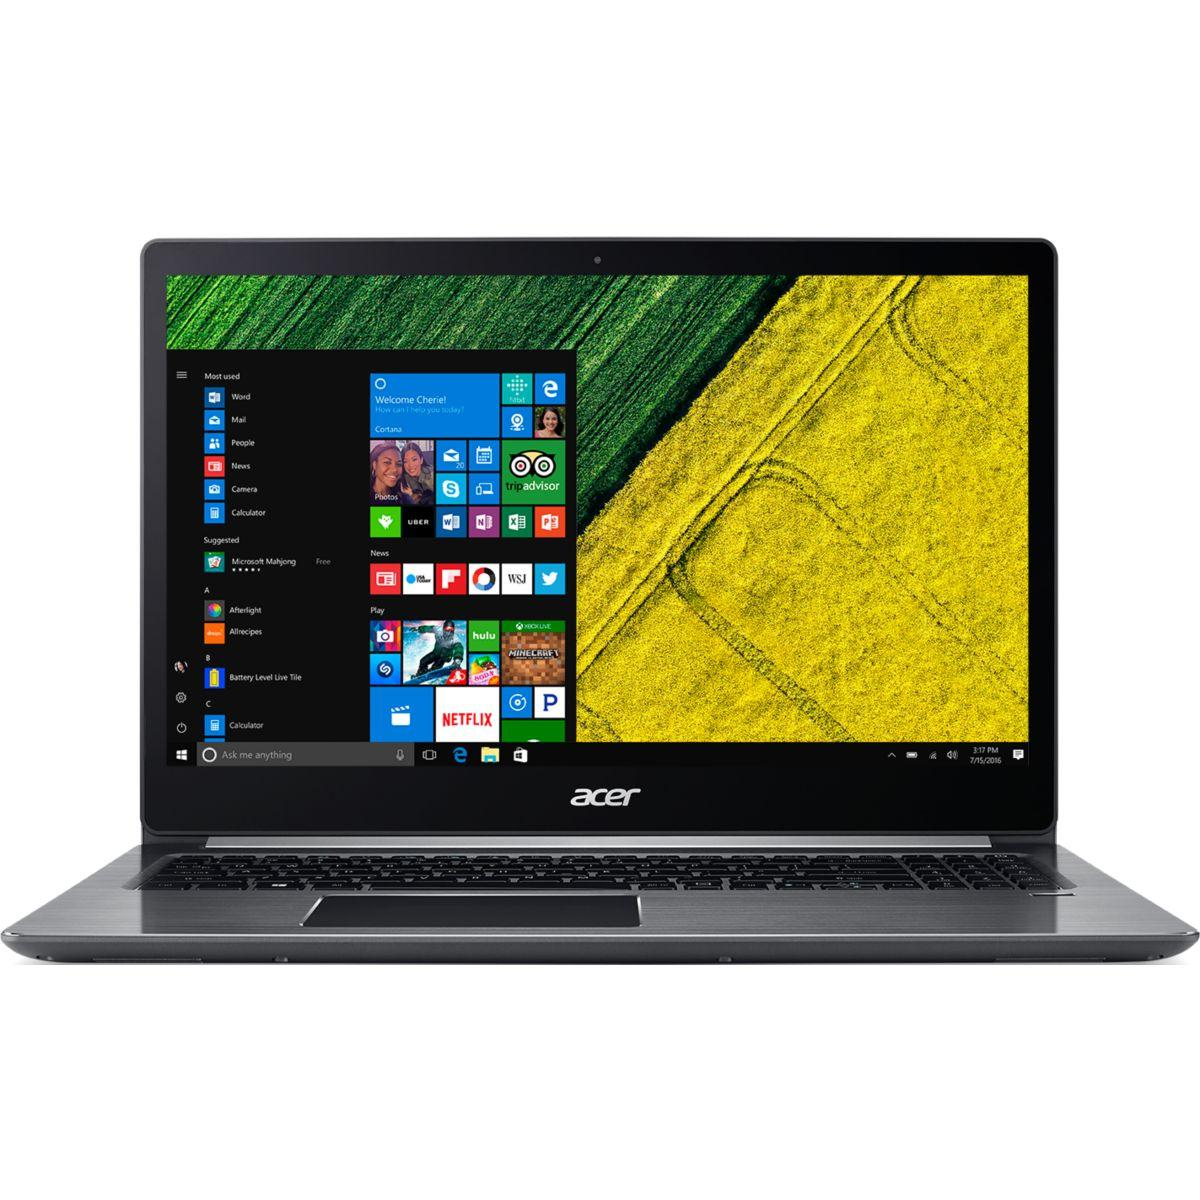 Portable acer swift sf315-51-34ef - 7% de remise imm�diate avec le code : wd7 (photo)